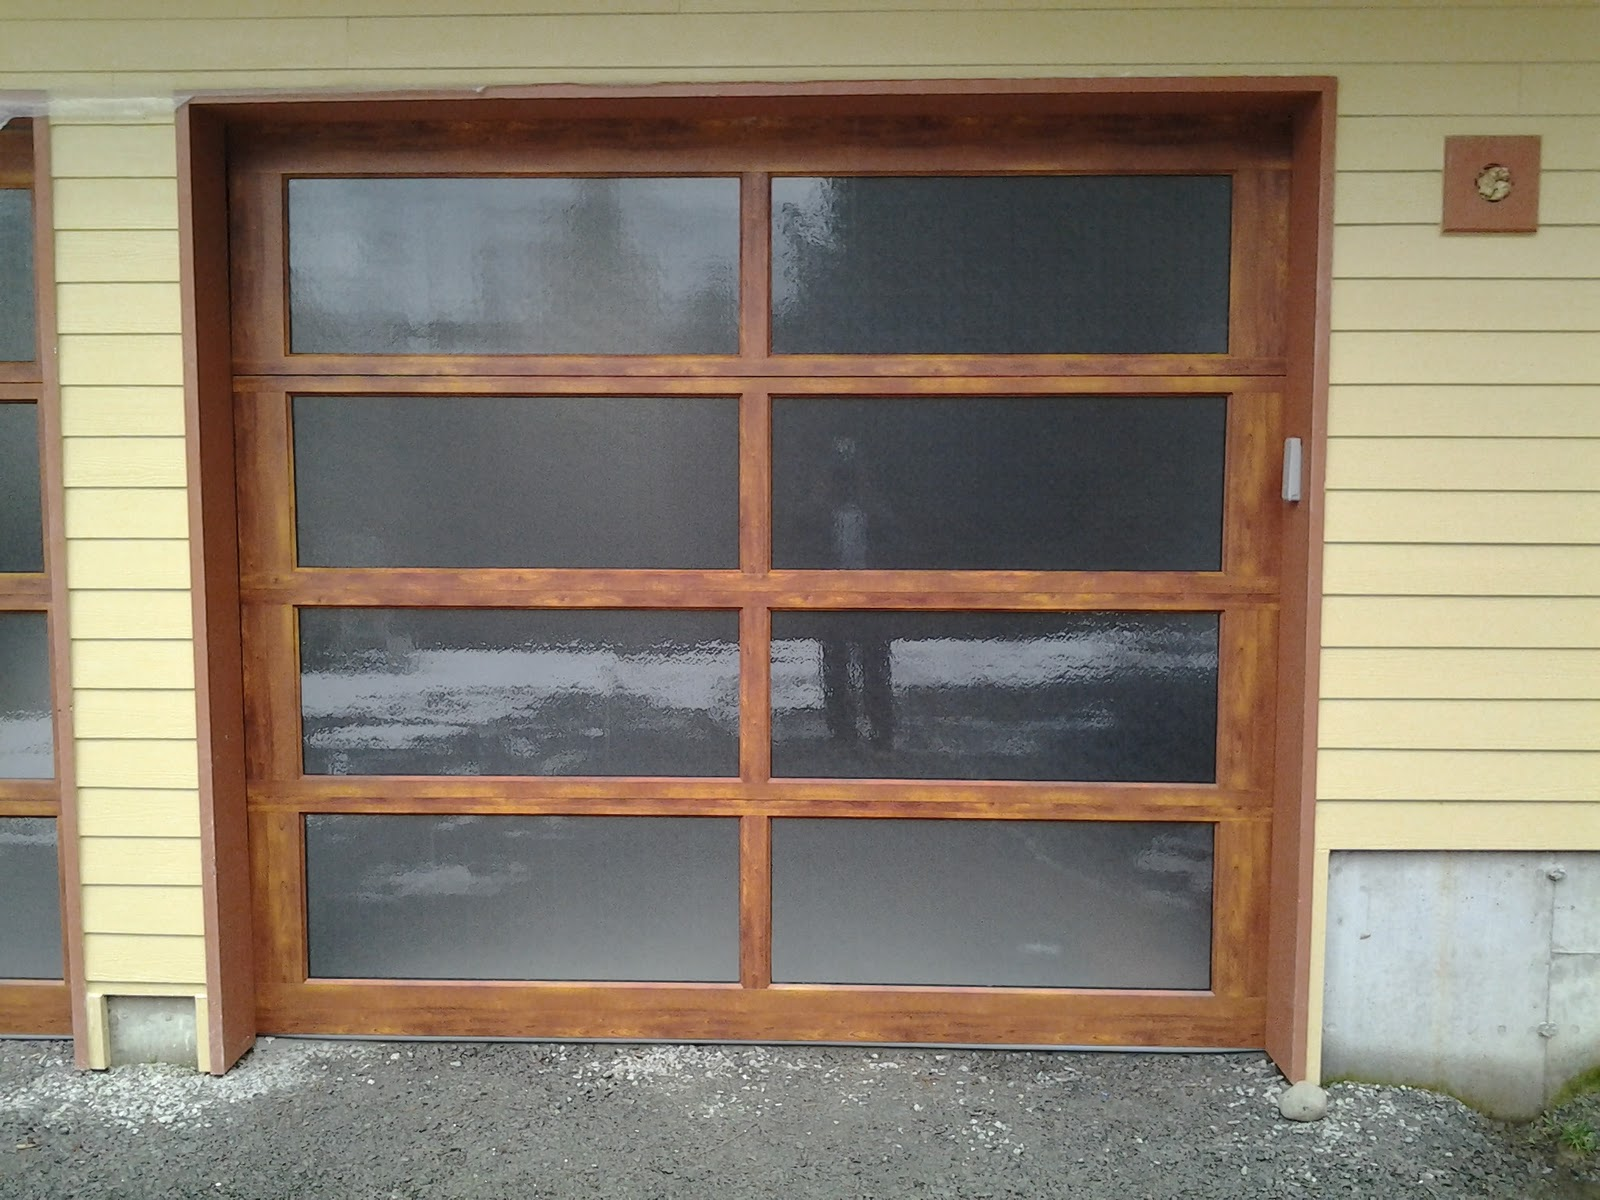 1200 #6F442F The Precision Garage Door Guy: The Beauty Of Wood In A Aluminum Door save image Precision Entry Doors 45771600